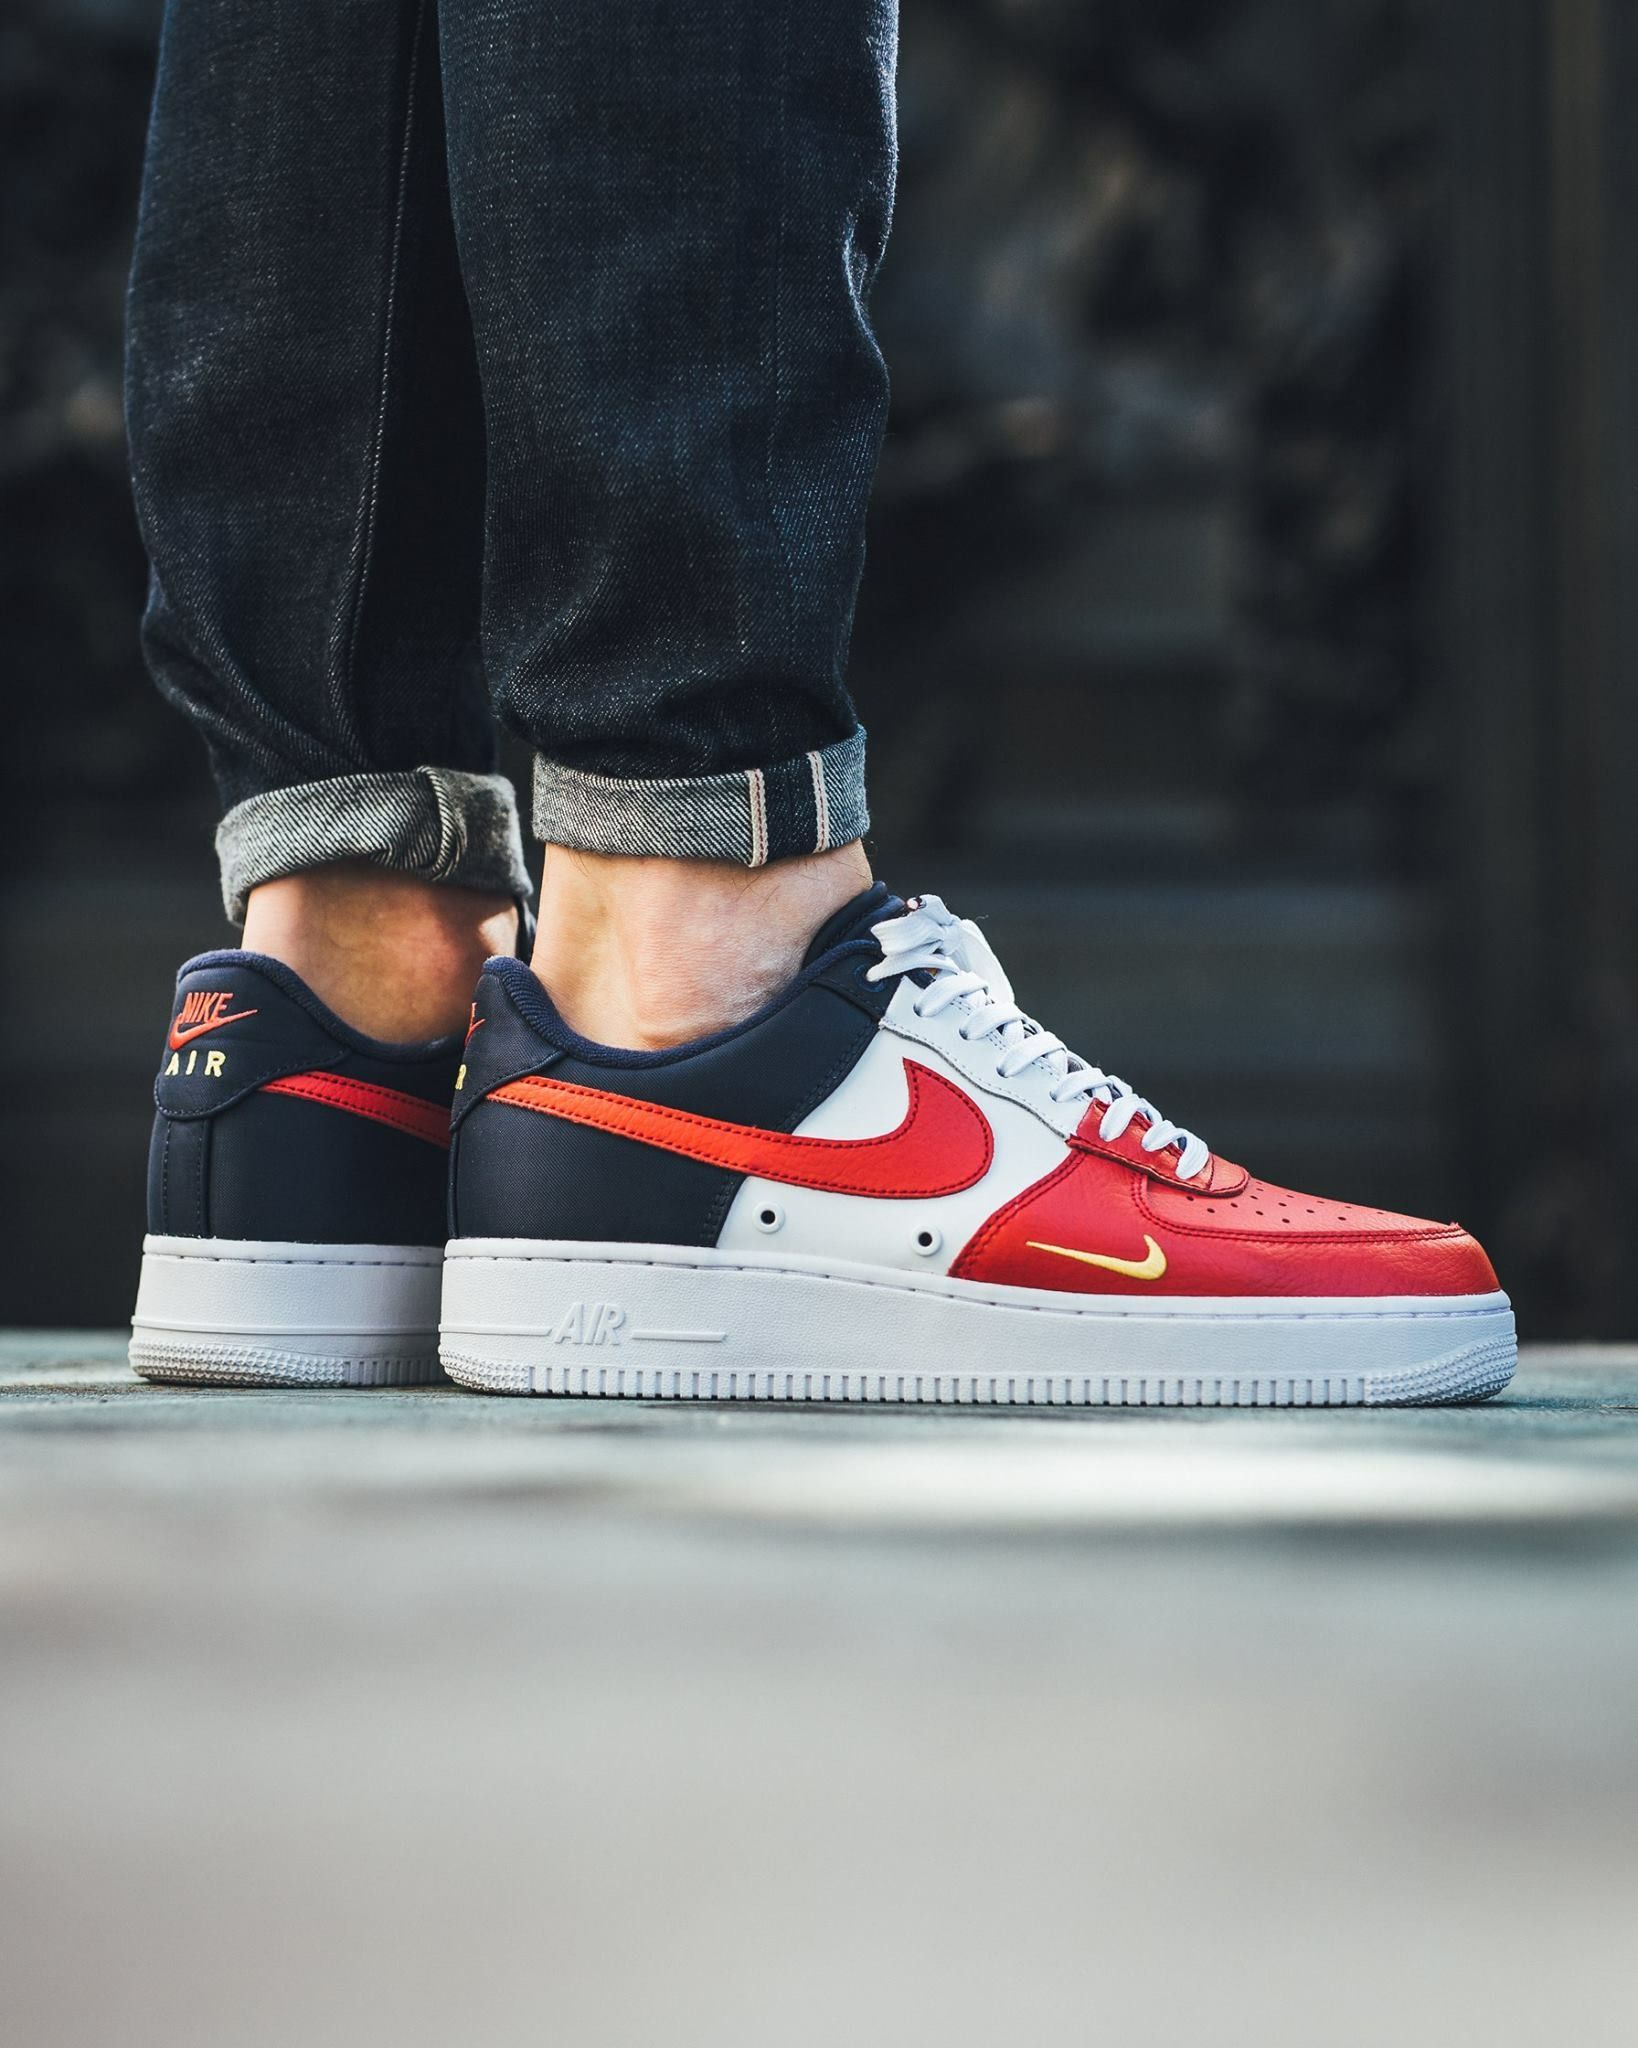 online retailer ab73e 3120c Nike Air Force 1 LV07